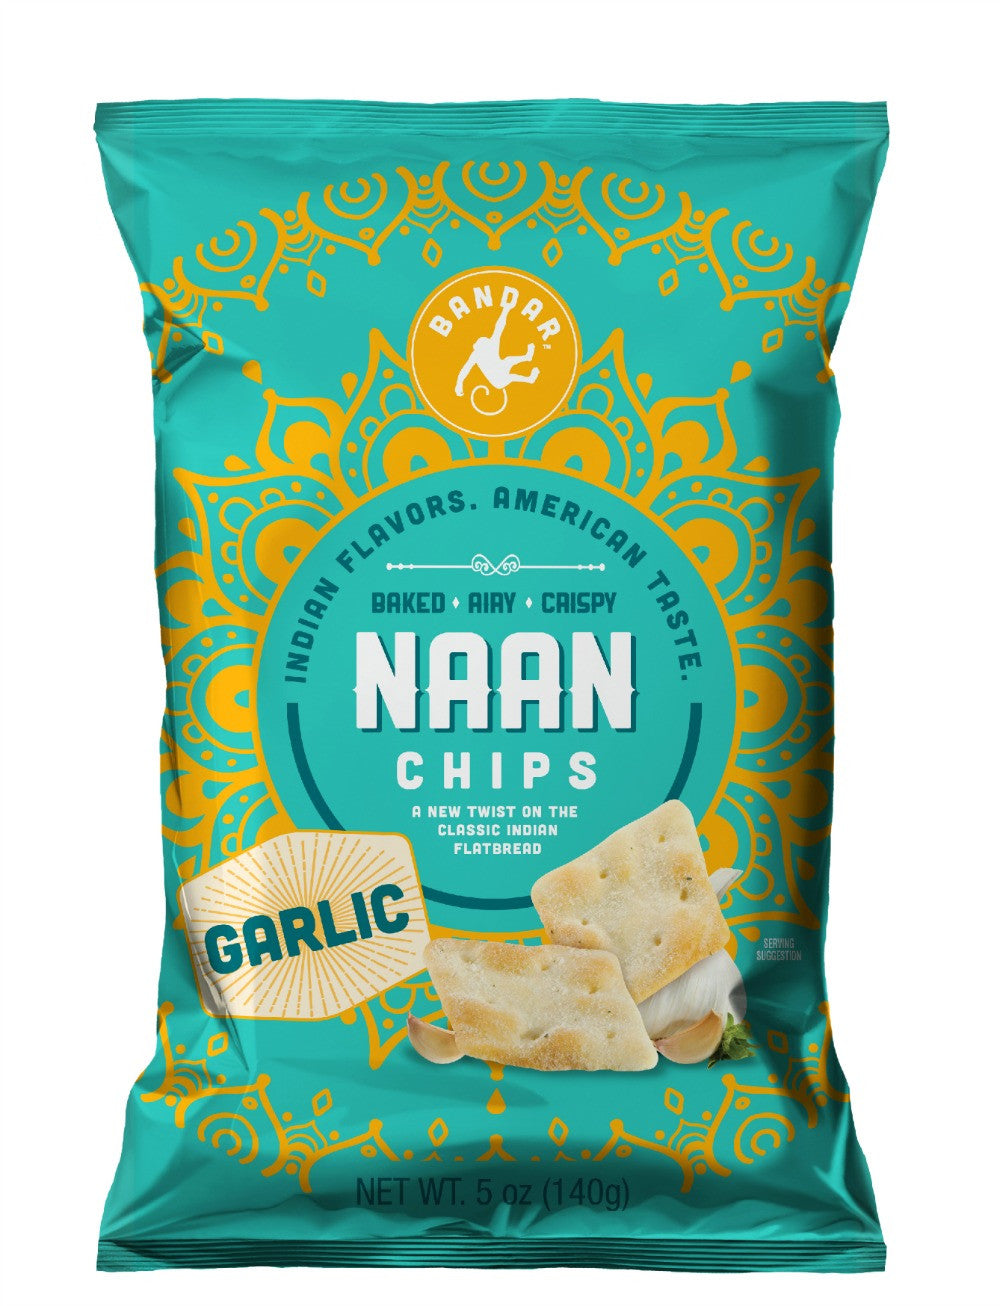 Naan Chips - Garlic - 5 oz bag - Case of 6